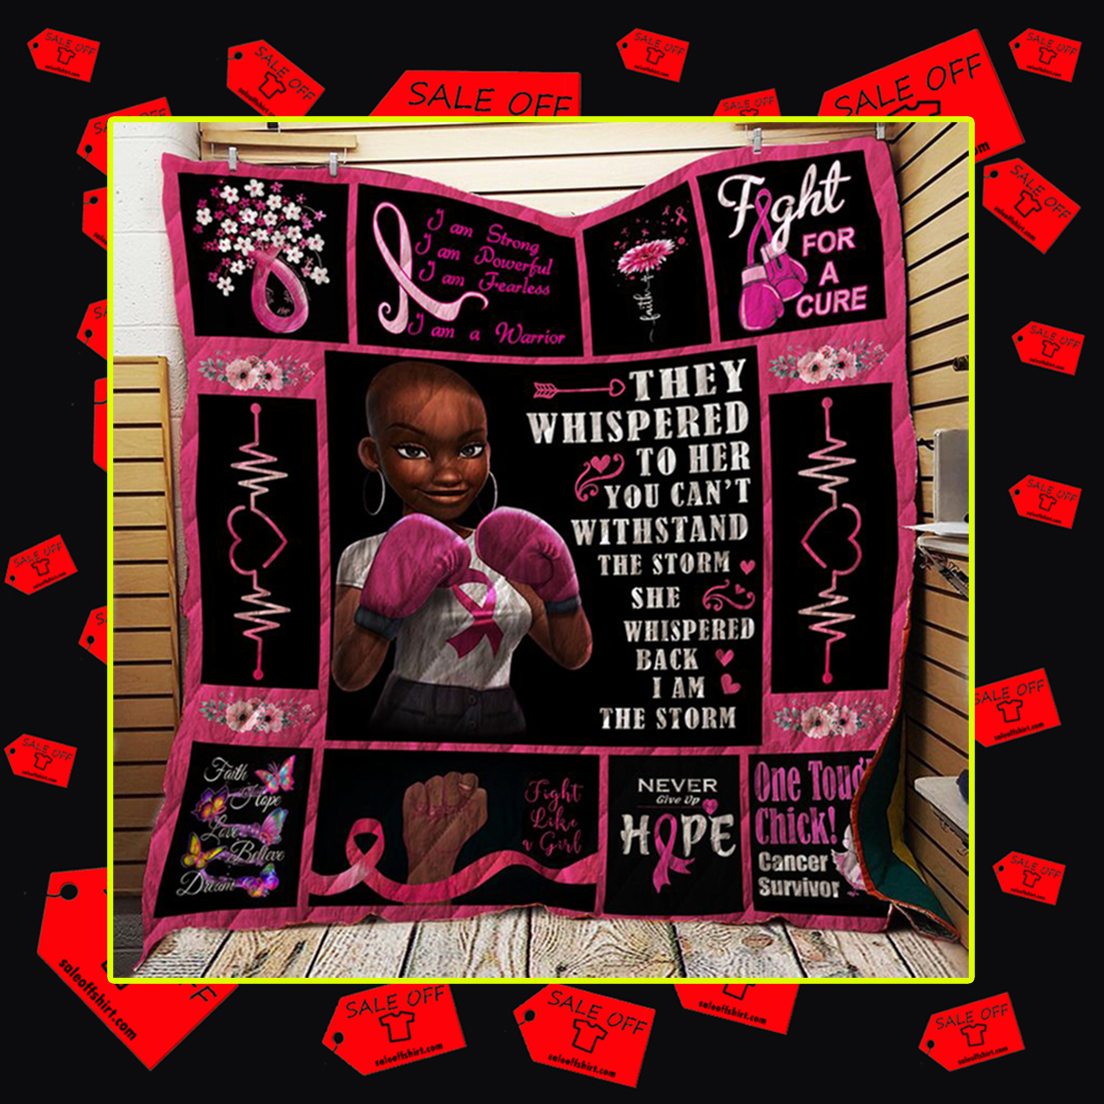 Breast cancer black girl they whispered to her you can't withstand the storm quilt blanket